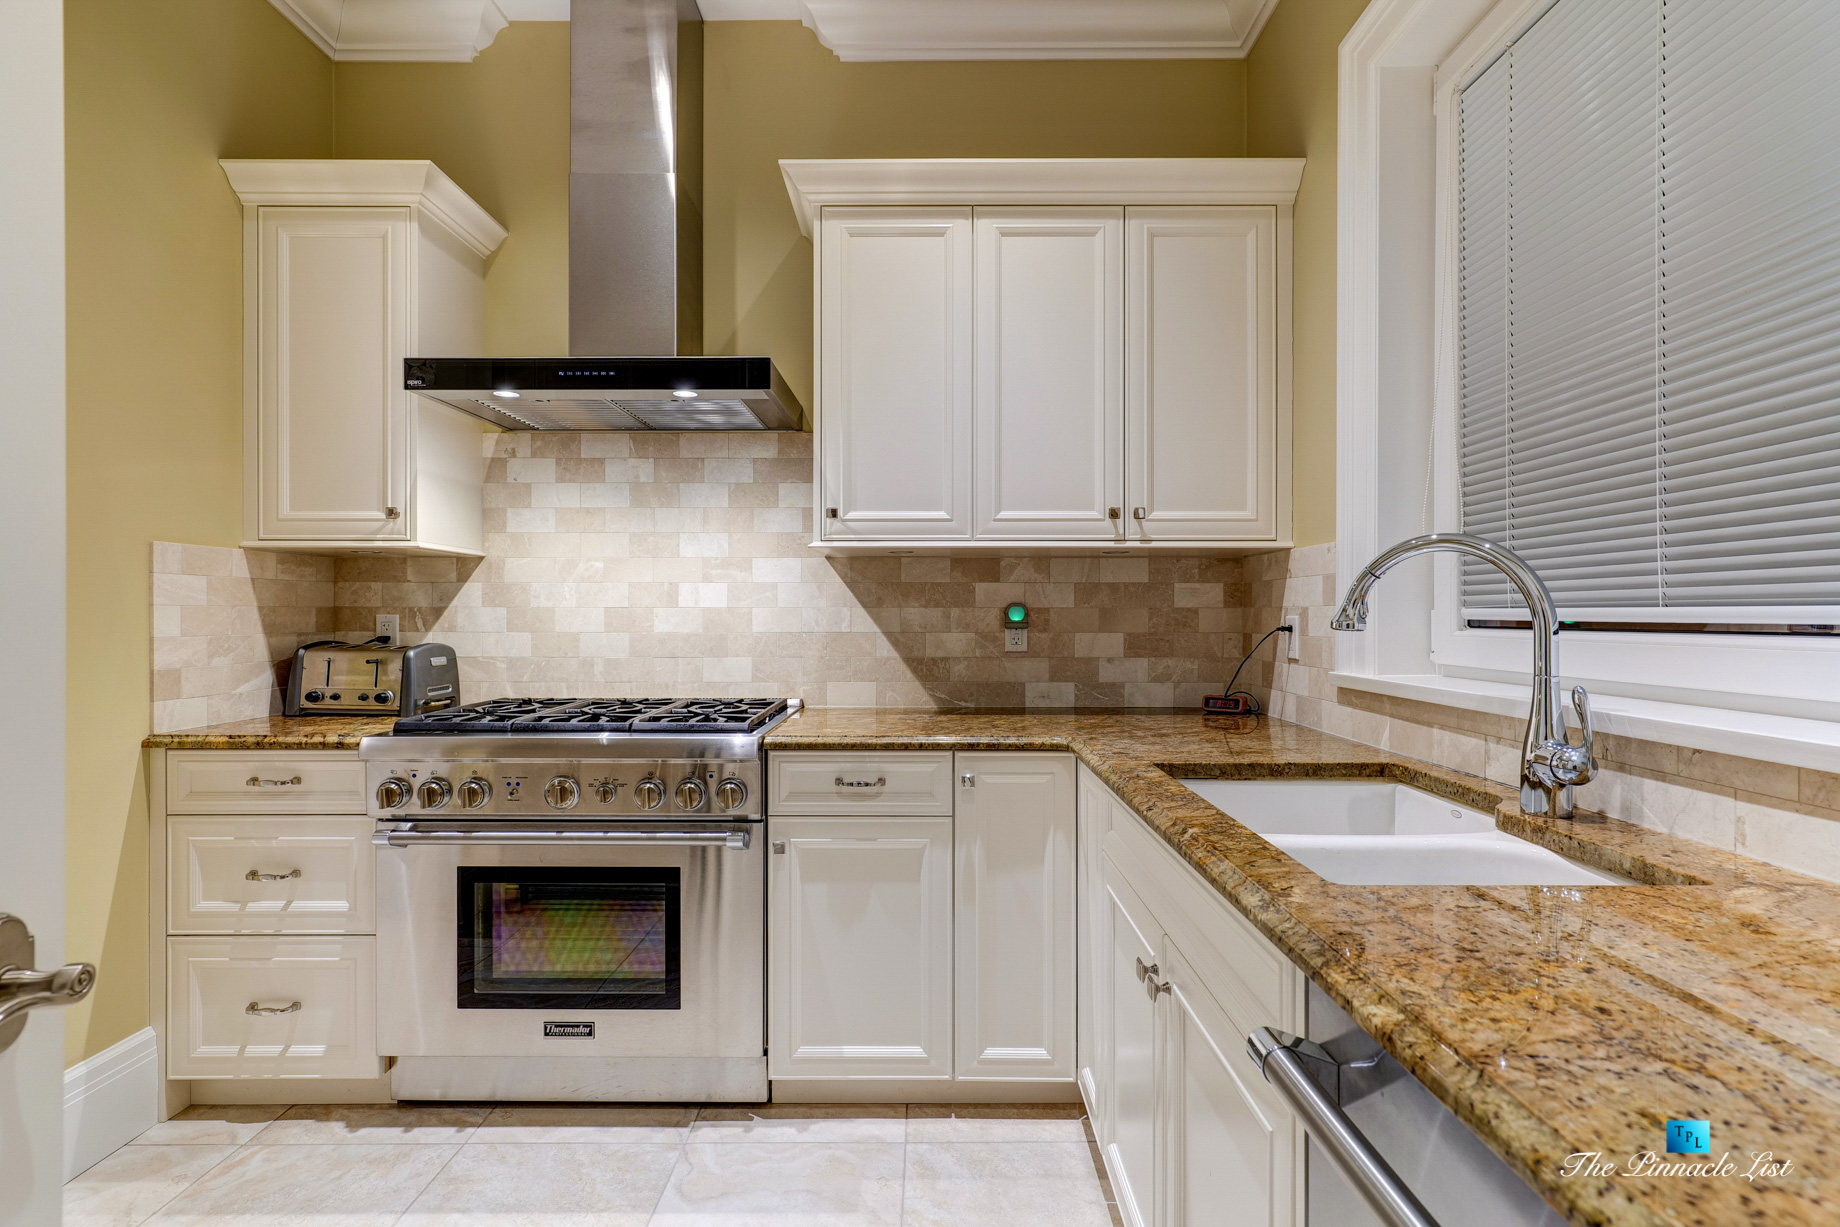 2057 Ridge Mountain Drive, Anmore, BC, Canada - Secondary Kitchen - Luxury Real Estate - West Coast Greater Vancouver Home